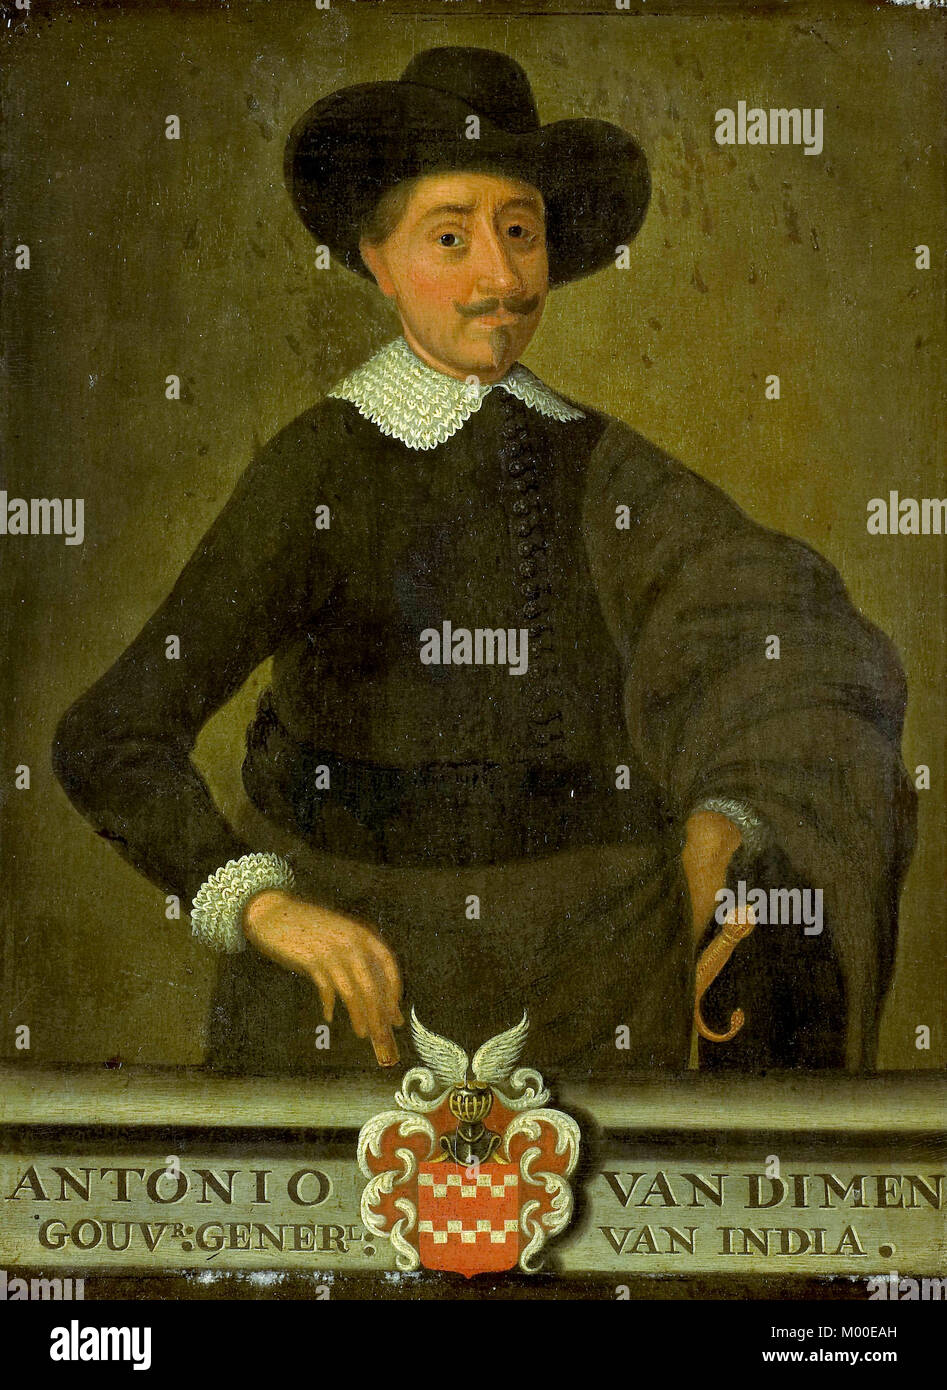 Anthony van Diemen, (1593 – 19 April 1645) Dutch colonial governor. - Stock Image